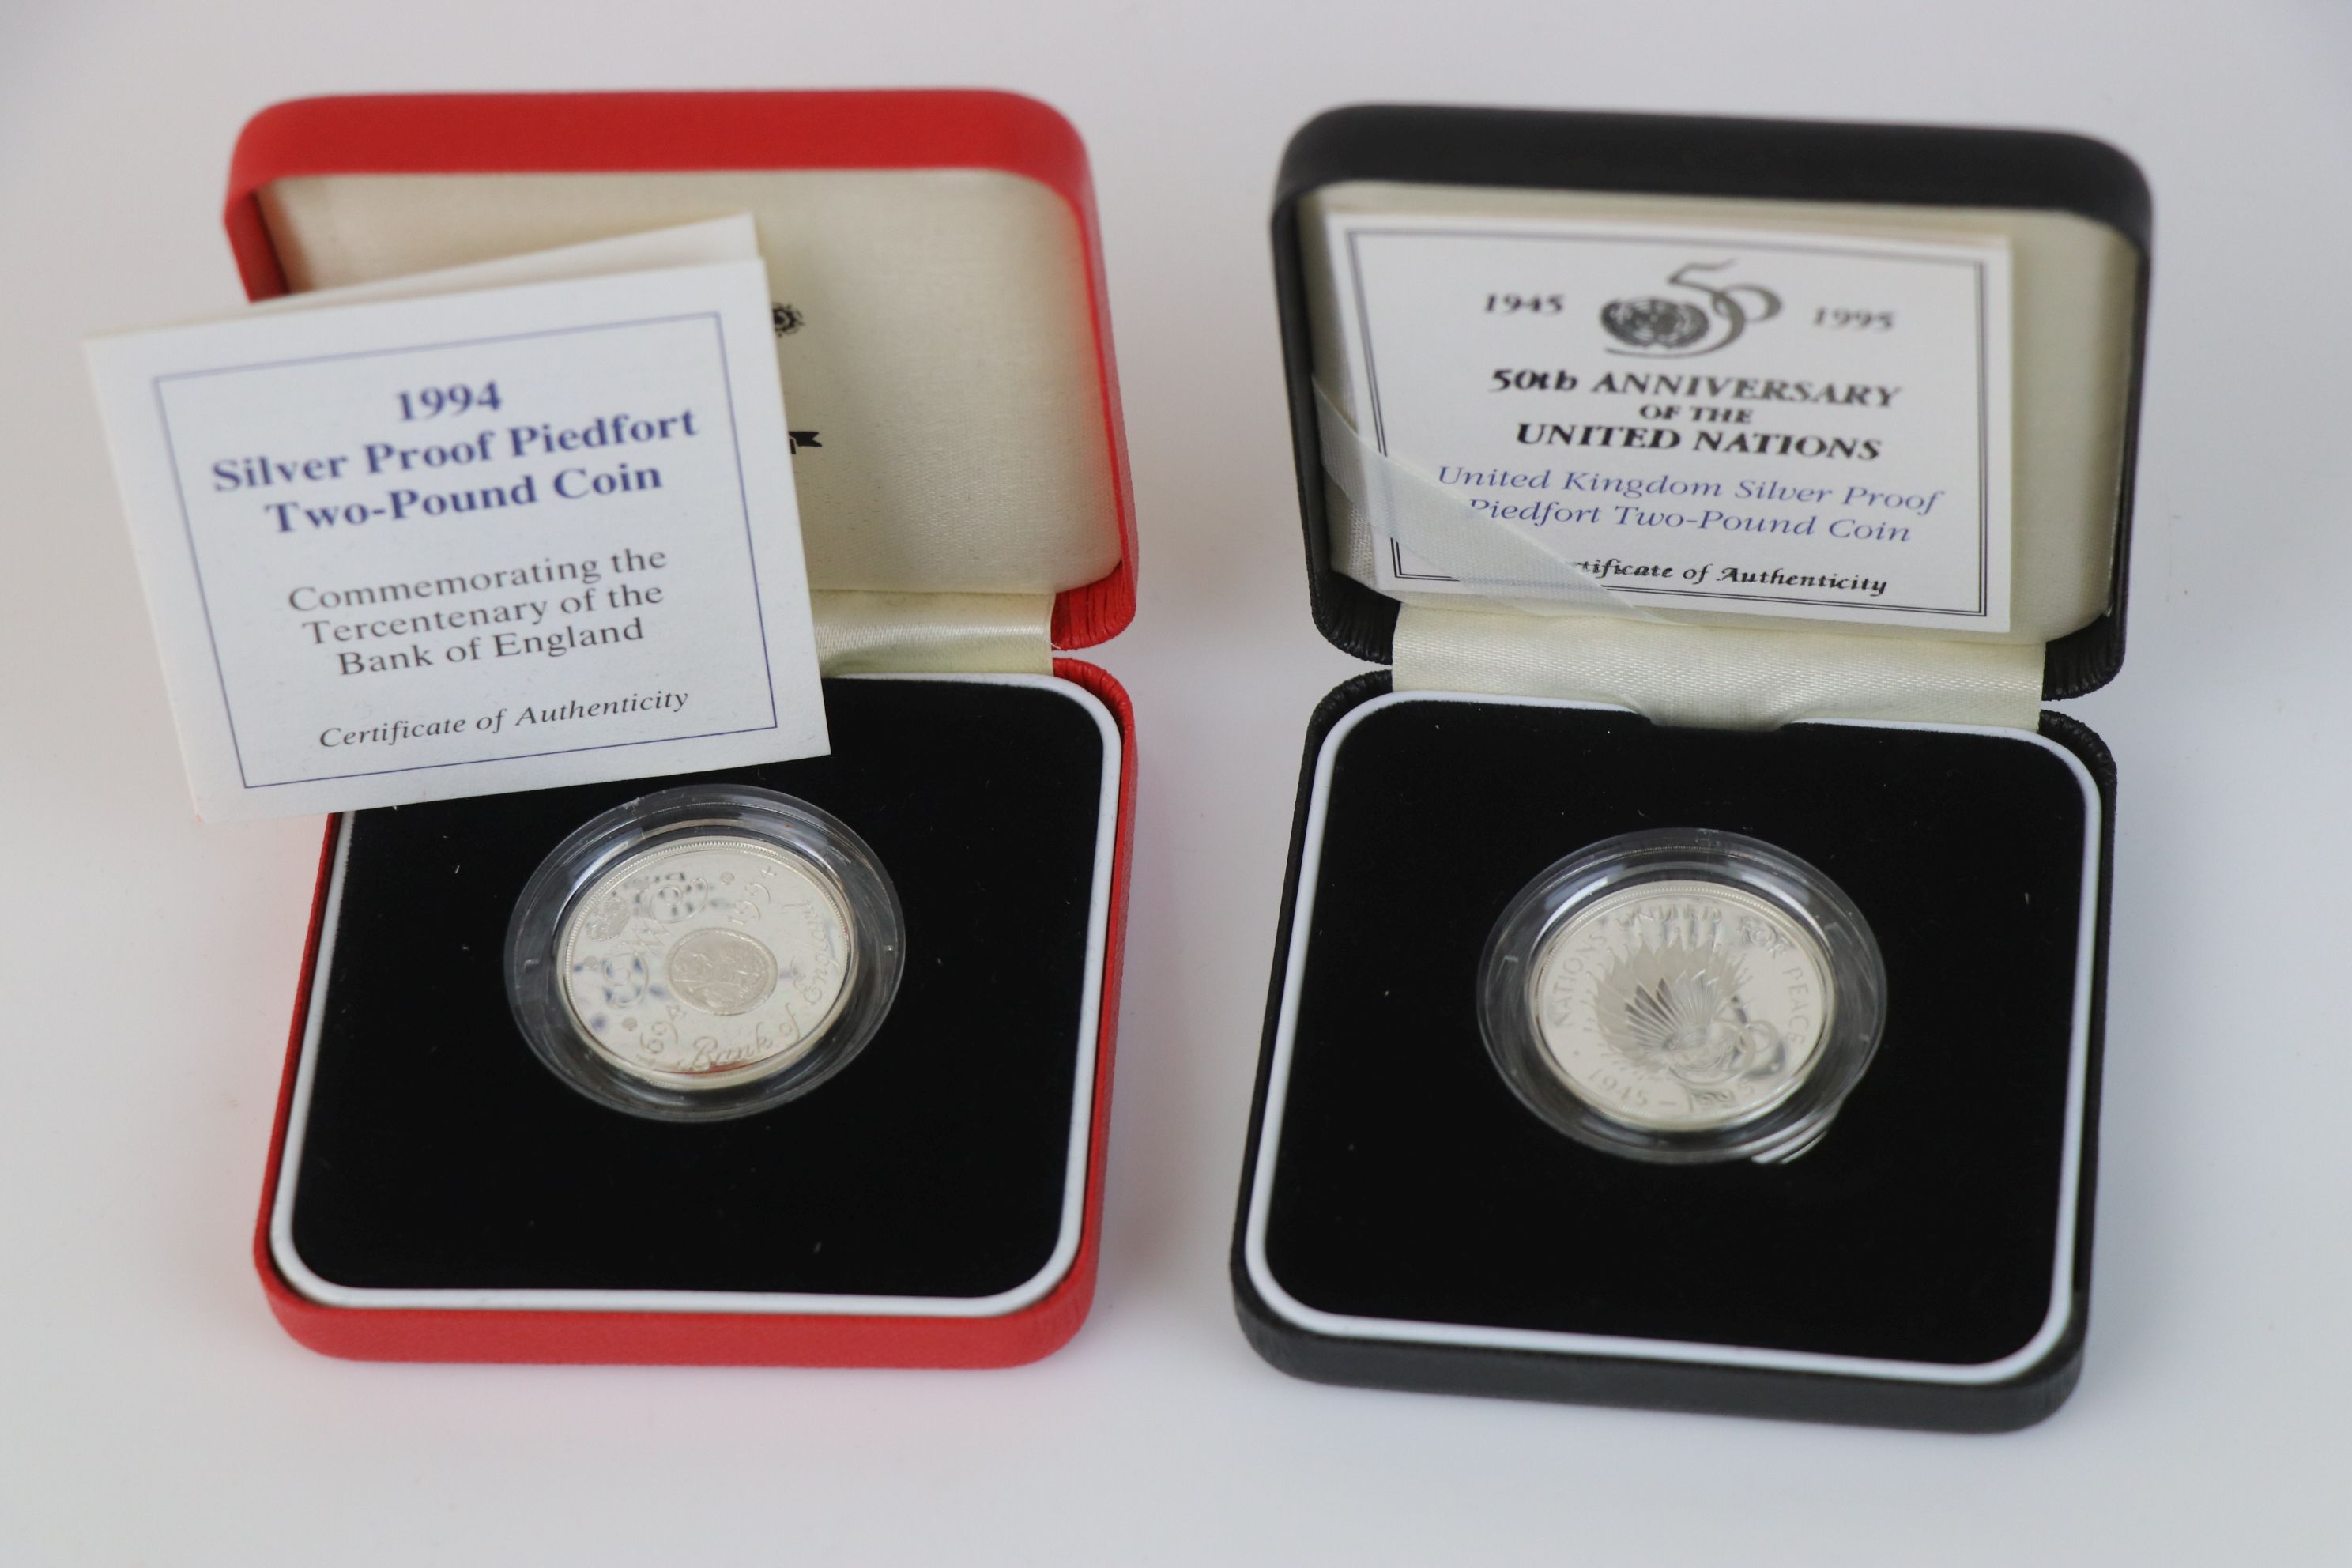 A cased Royal Mint 1994 silver proof Piedfort £2 coin commemorating the Tercentenary of the Bank - Image 5 of 5